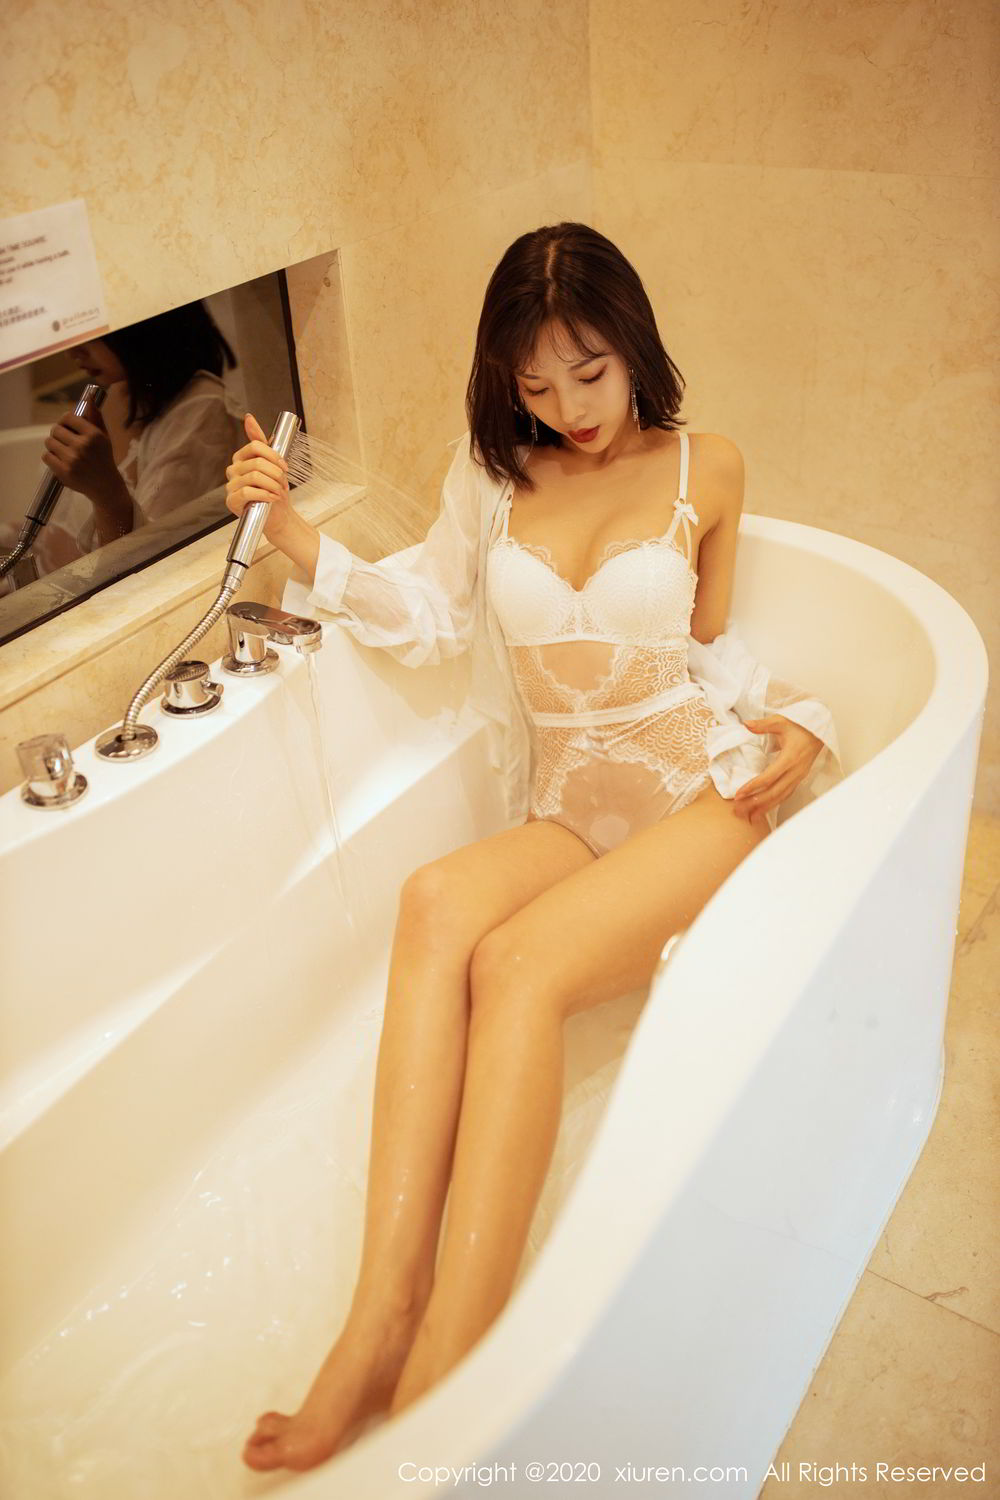 [XiuRen] Vol.2158 Chen Xiao Miao 19P, Bathroom, Chen Xiao Miao, Tall, Wet, Xiuren